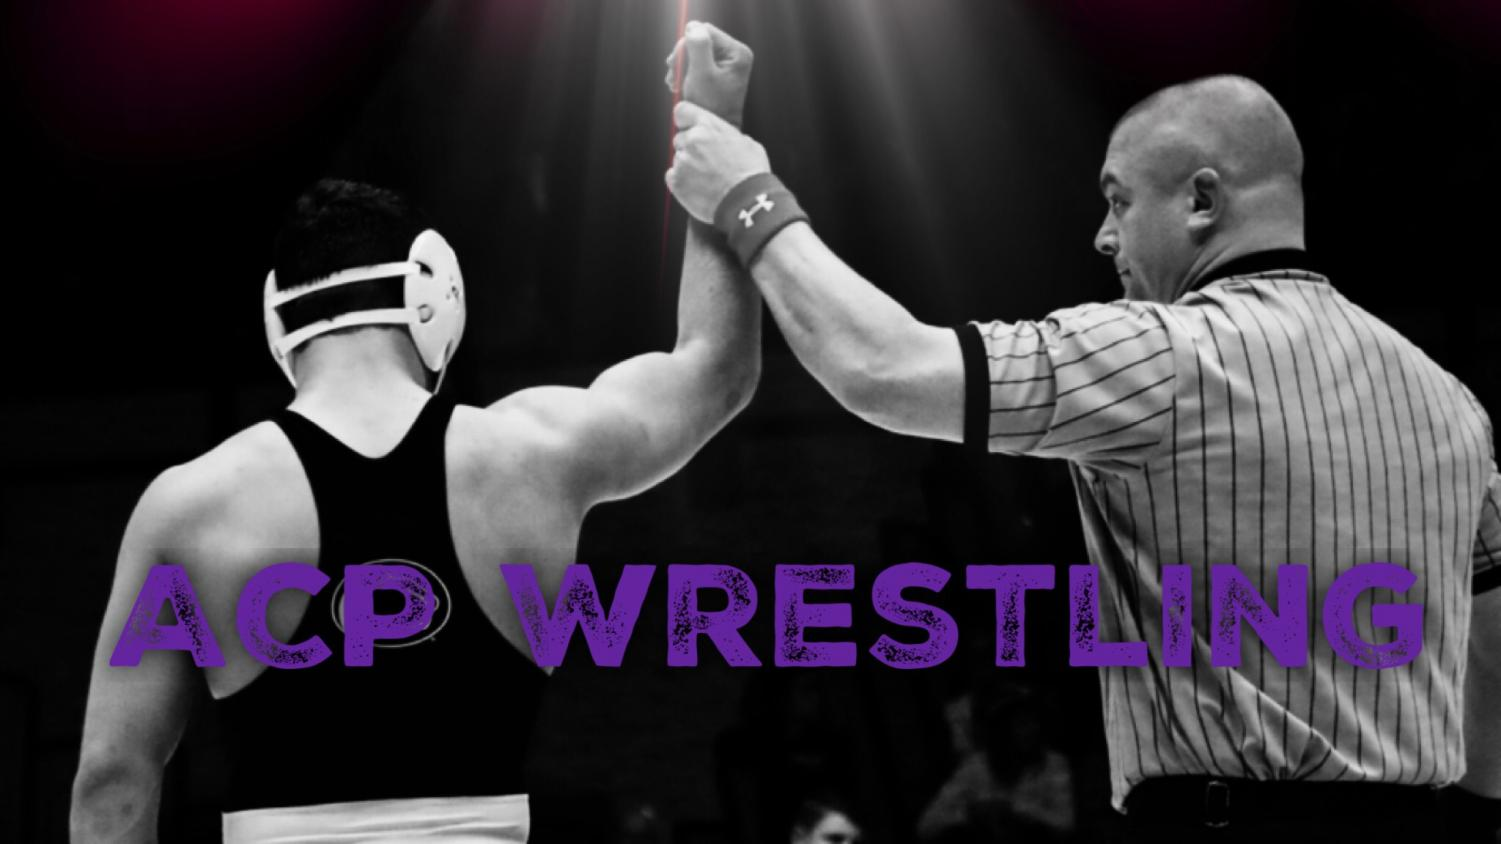 Photograph borrowed from acpathletics.com/wrestling/